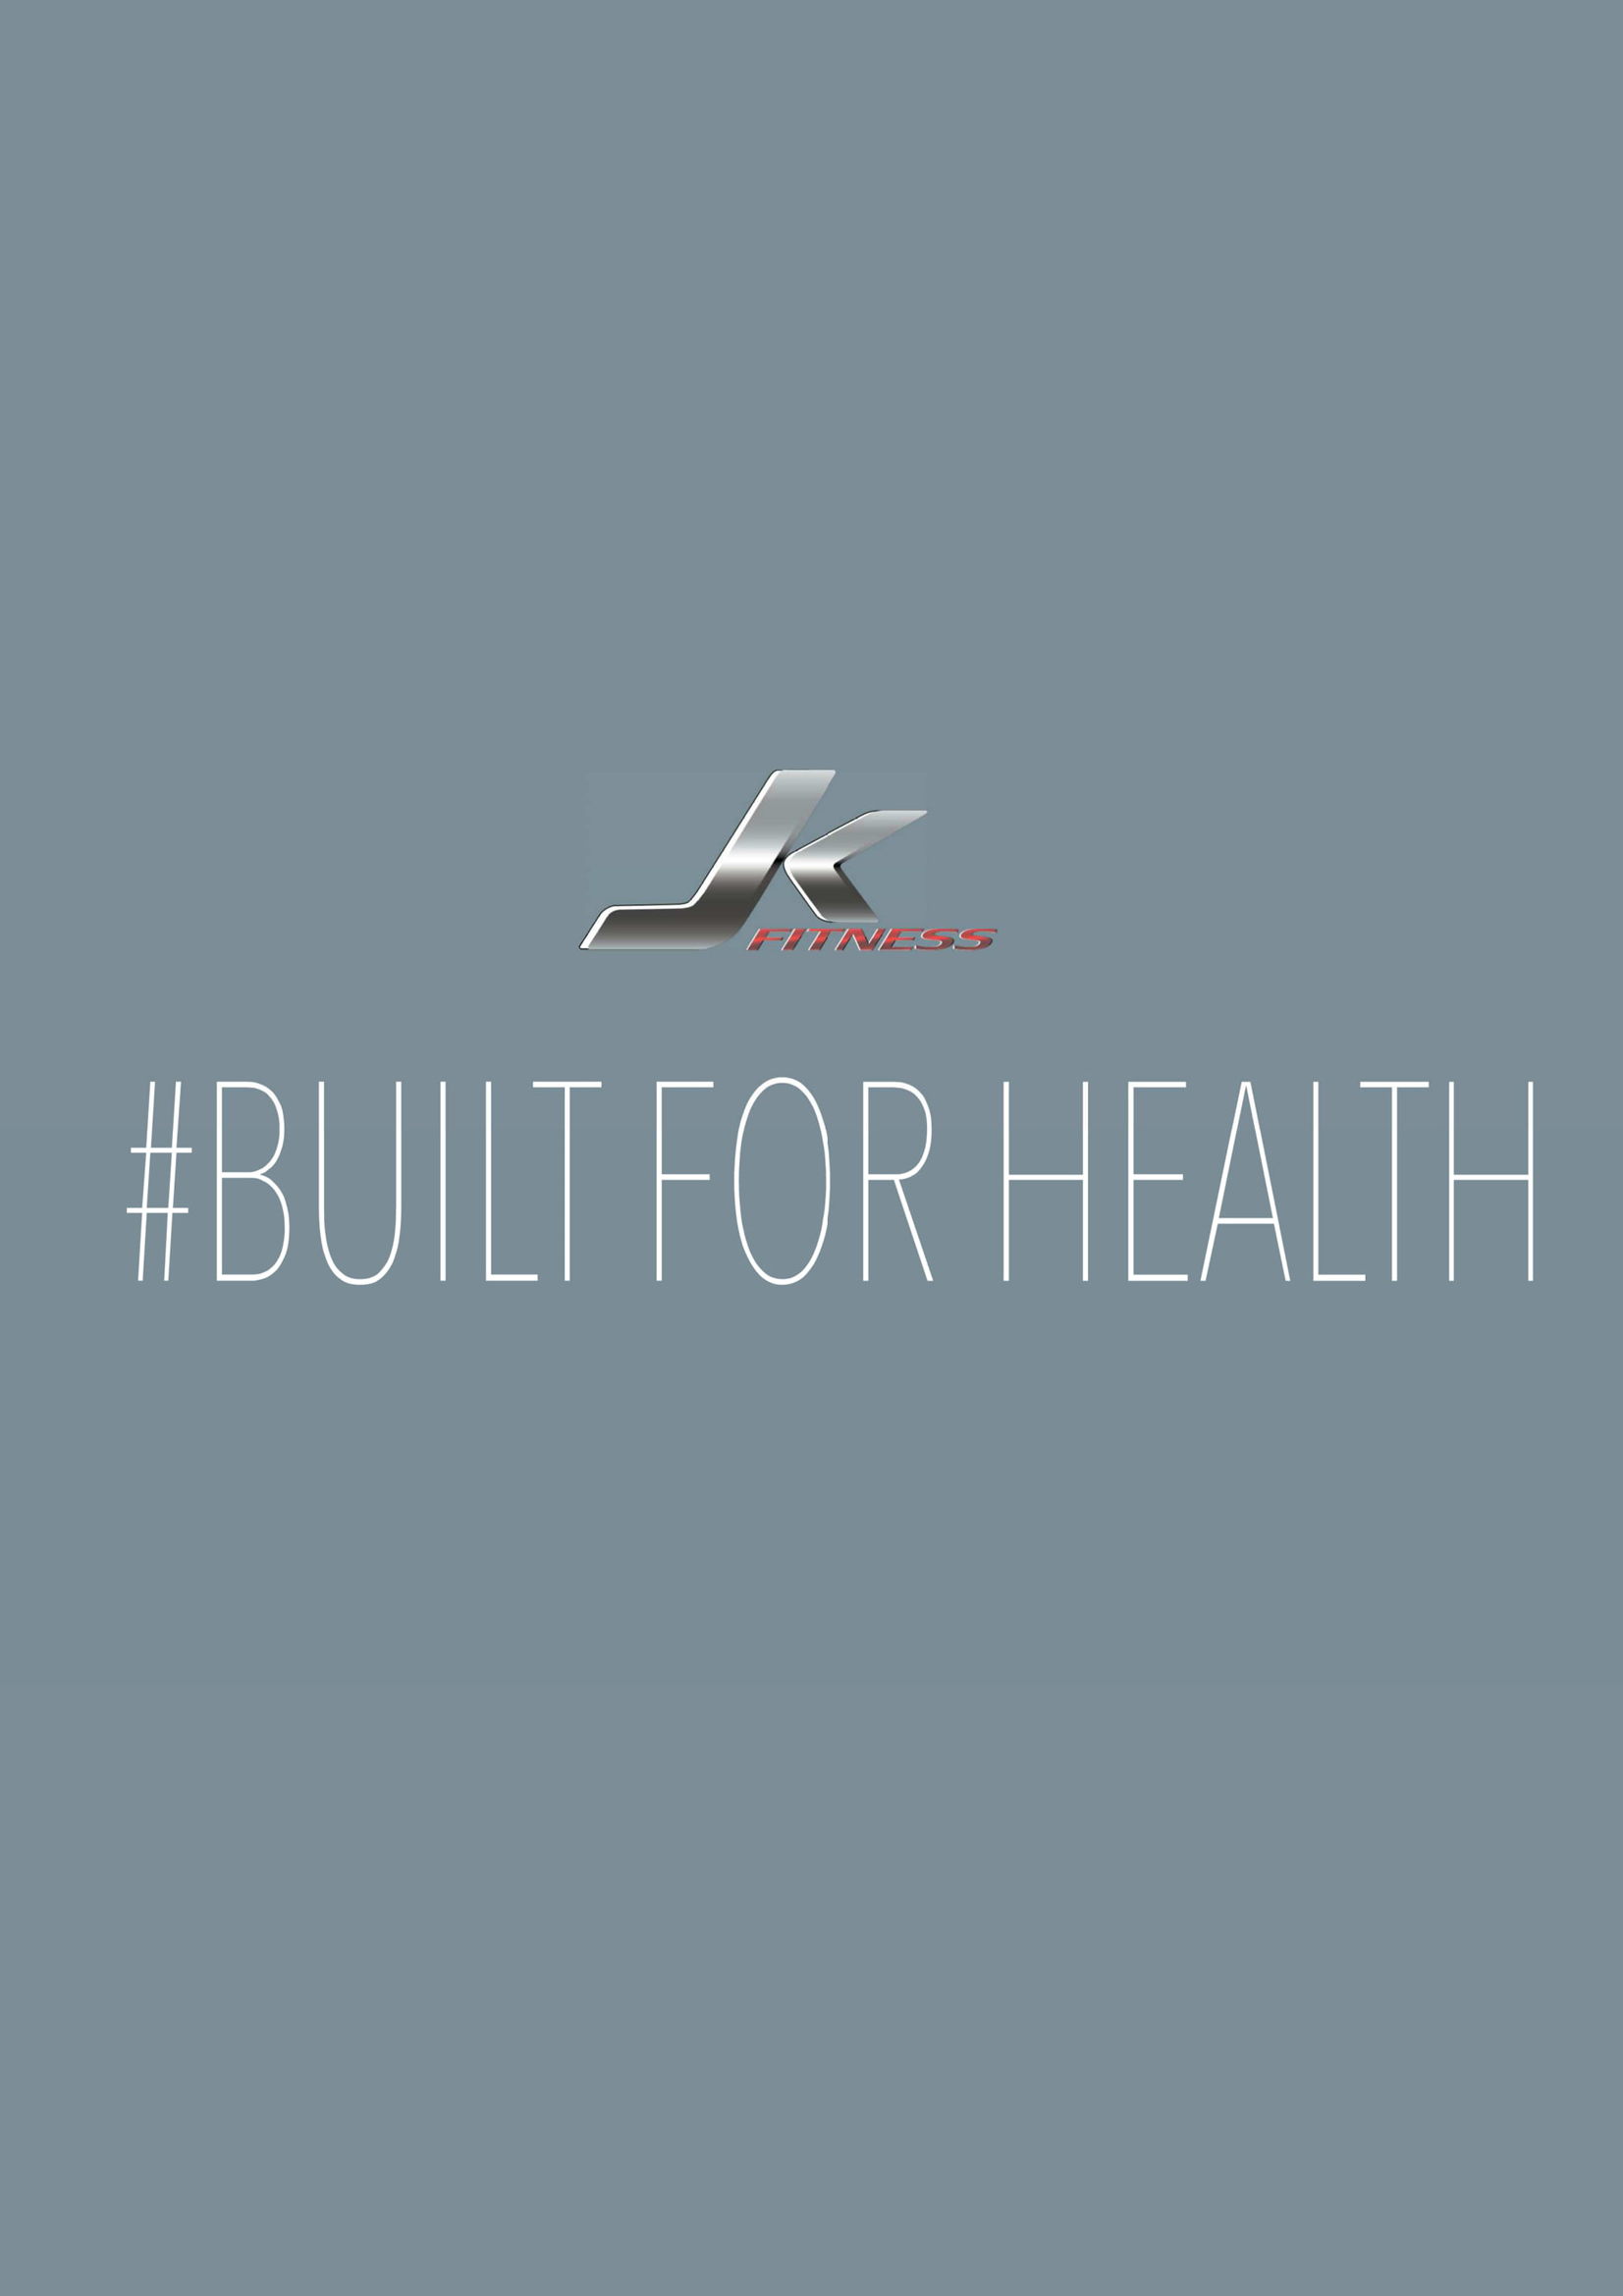 Built for health